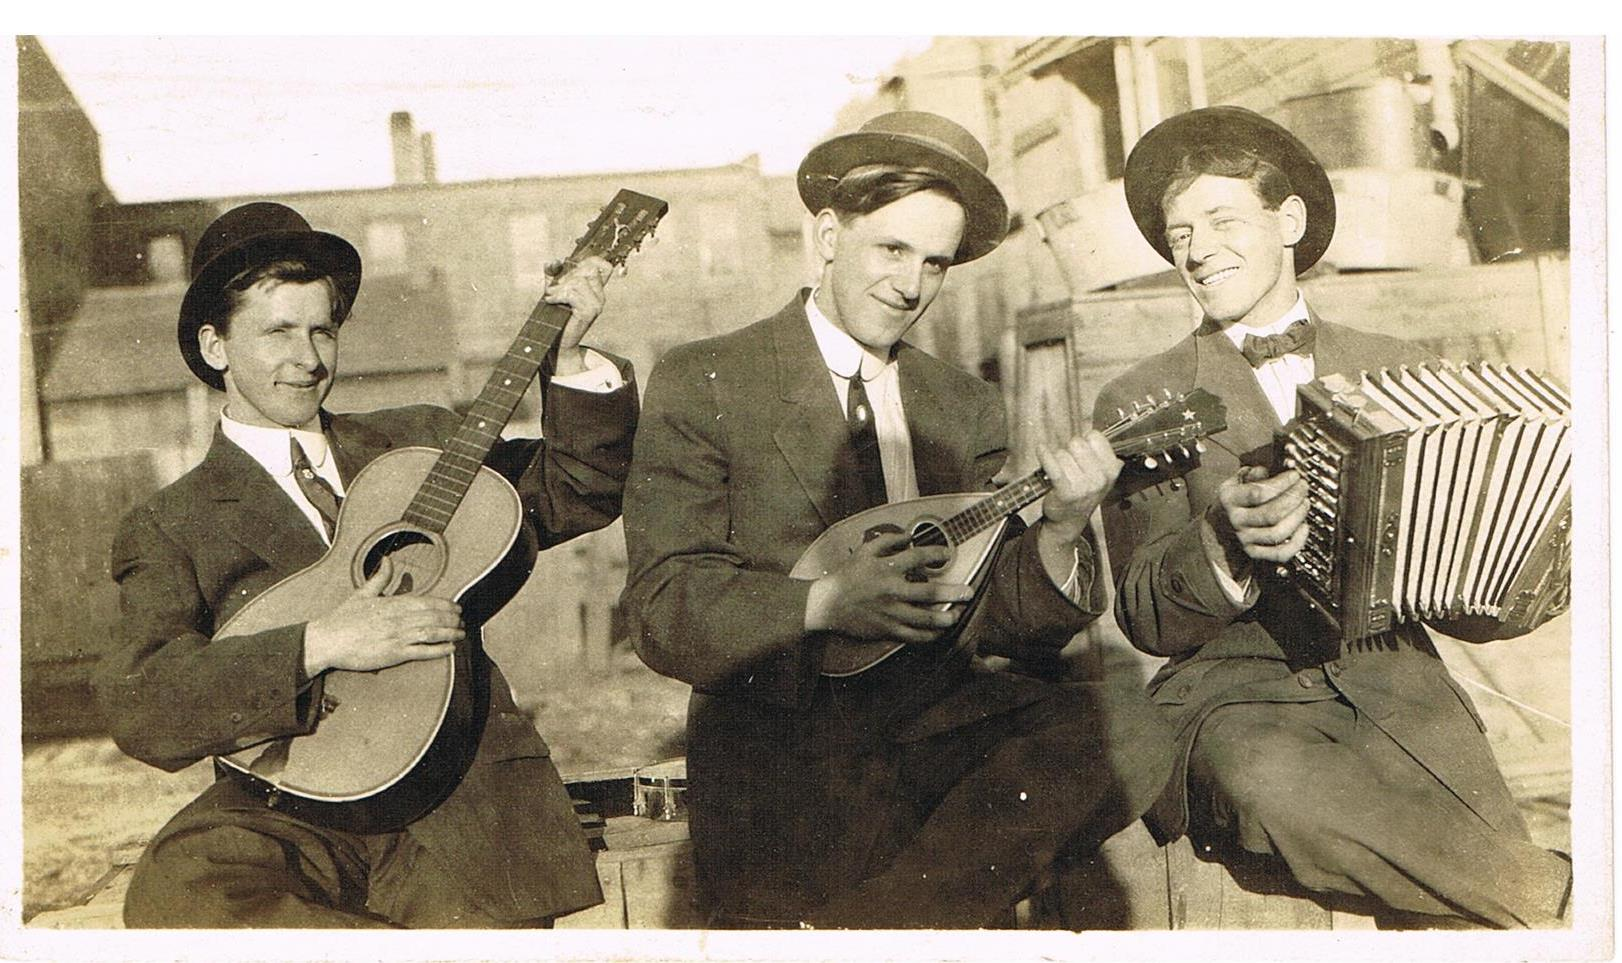 84.15.42 DBP259 PC Three musicians with hats and instruments guitar accordian c.1920